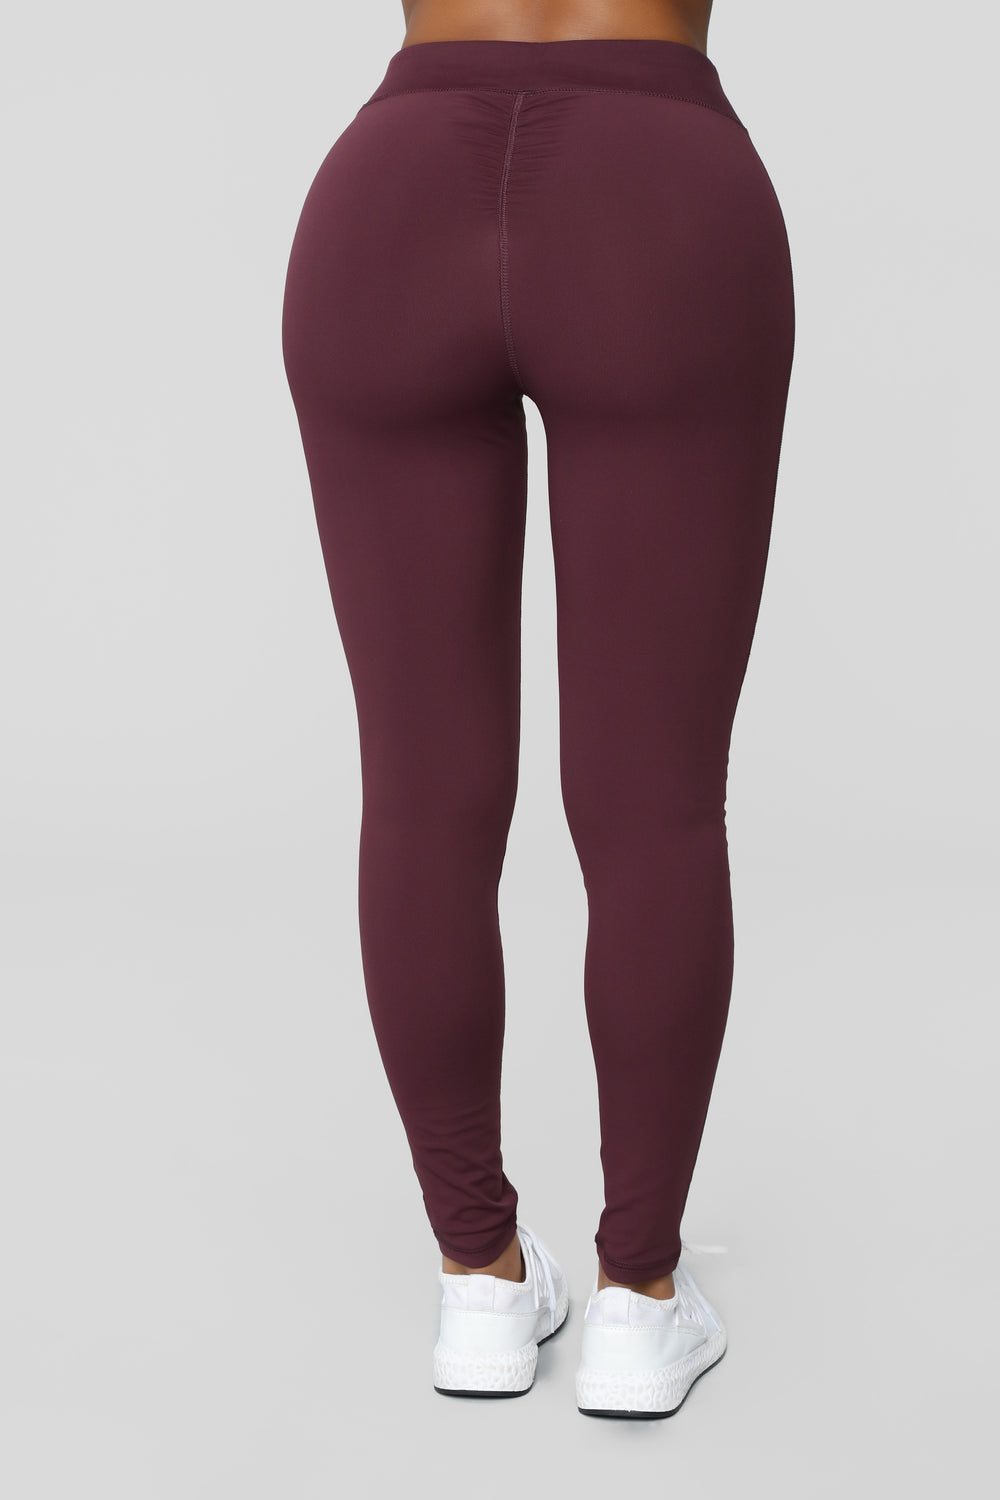 High Waisted Scrunch Booty Performance Legging - Purple